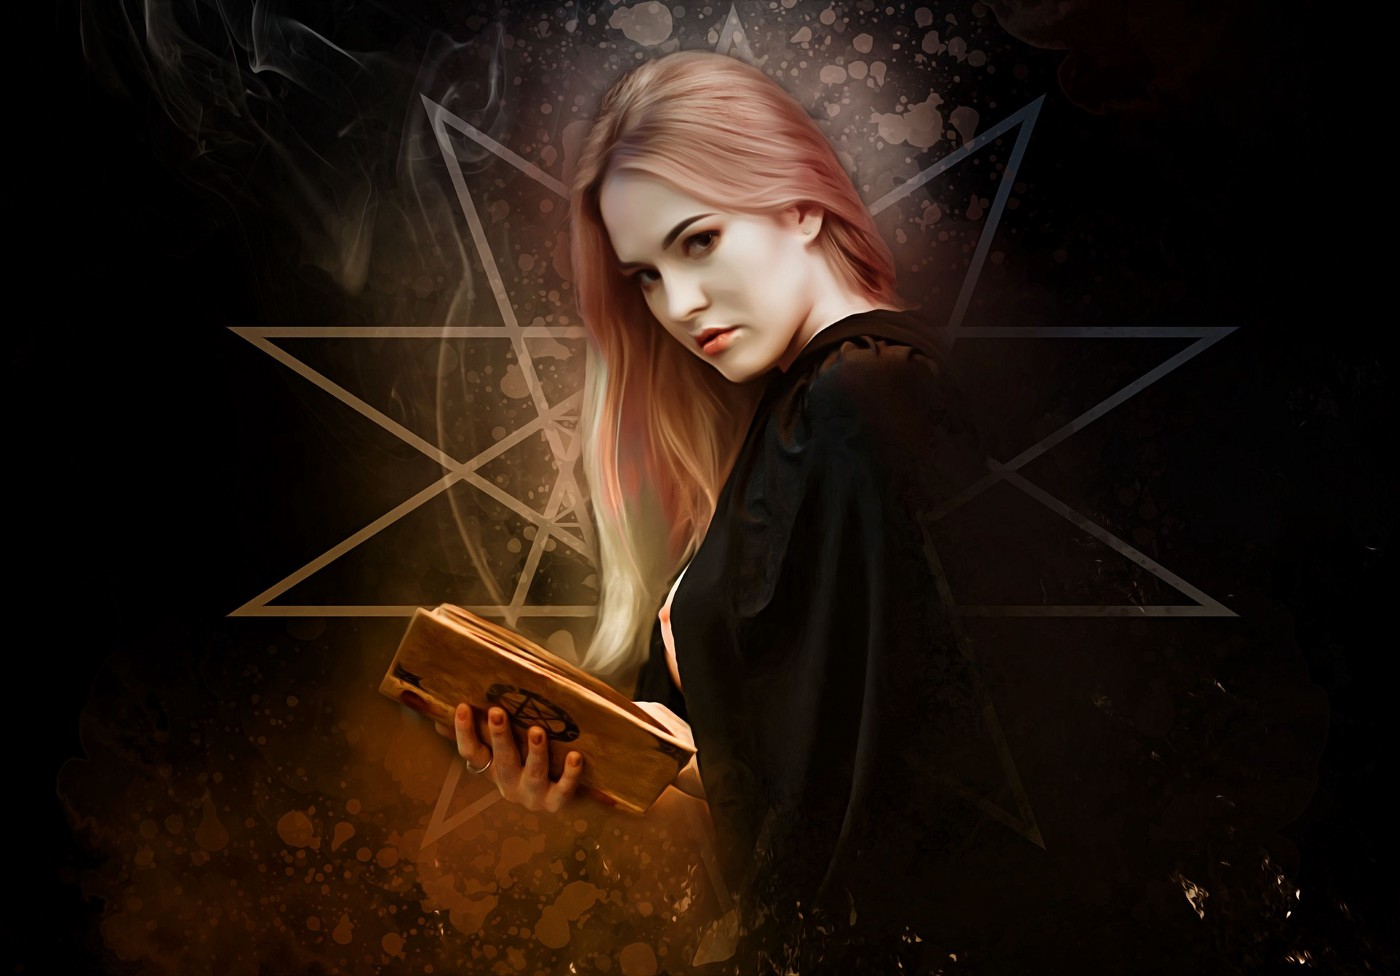 witch, holding a book as though she's casting a spell for revenge